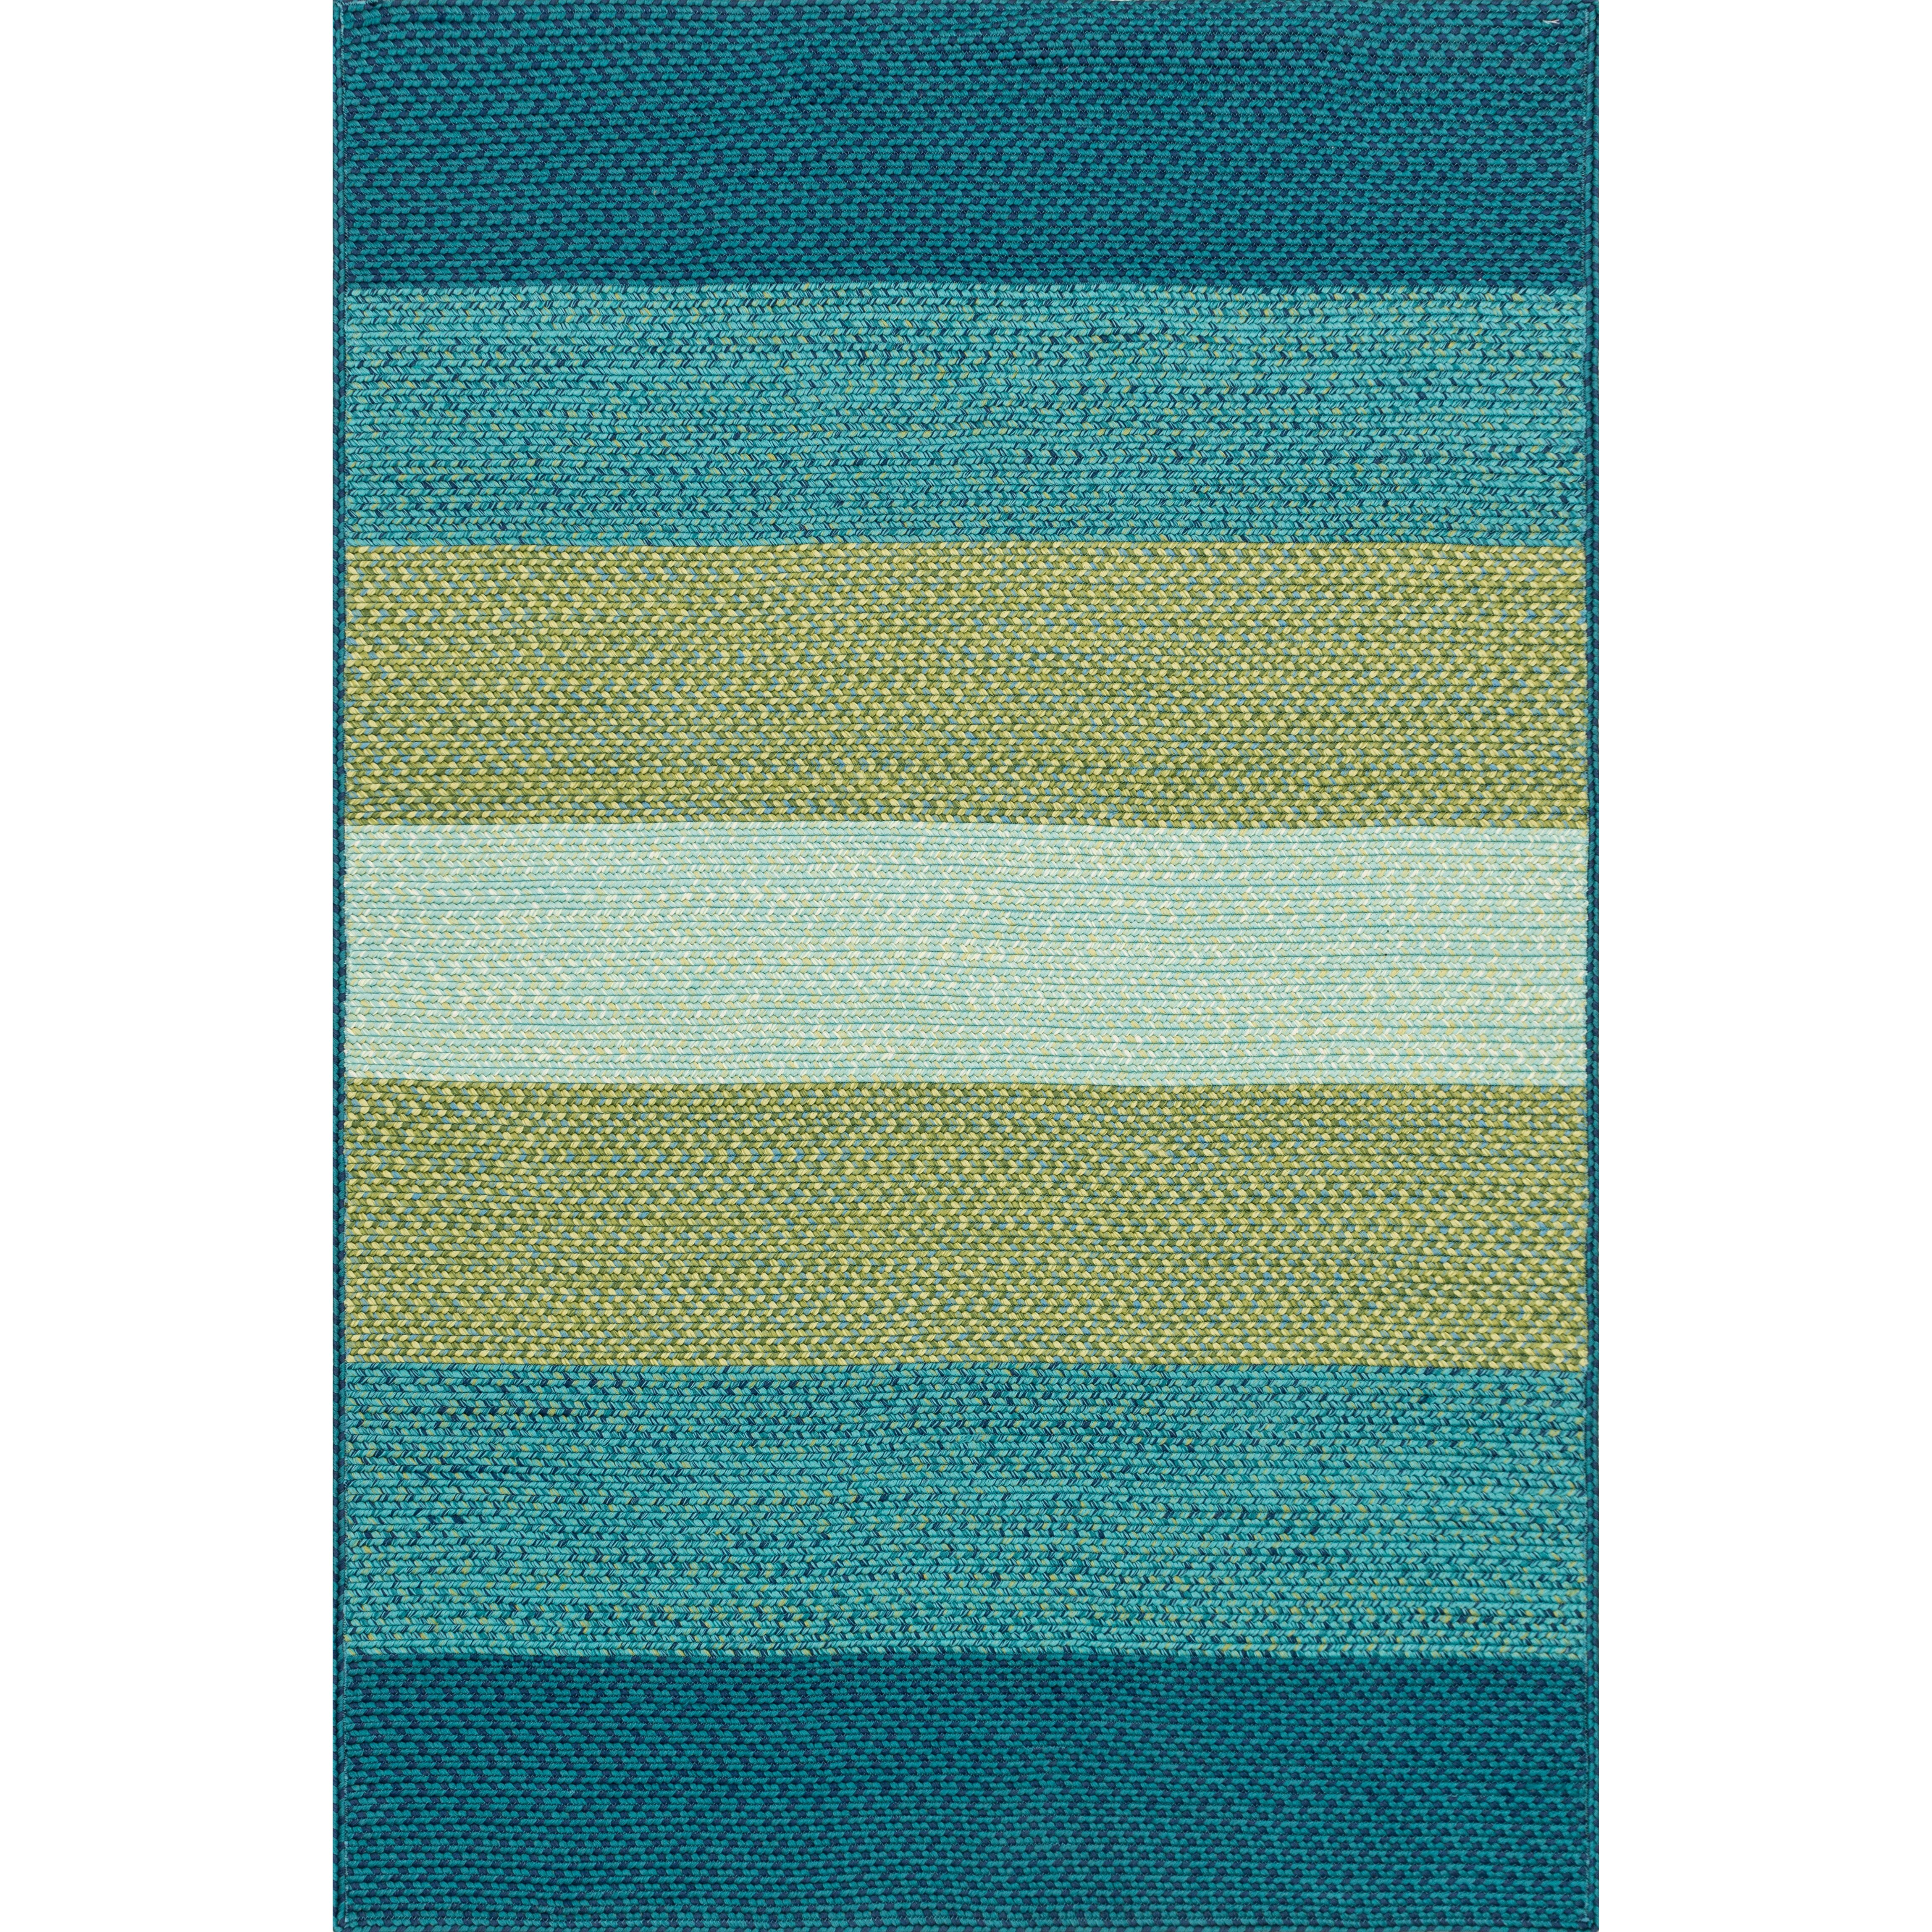 Jenson indoor outdoor rug in blue green reviews joss for Indoor outdoor carpet green